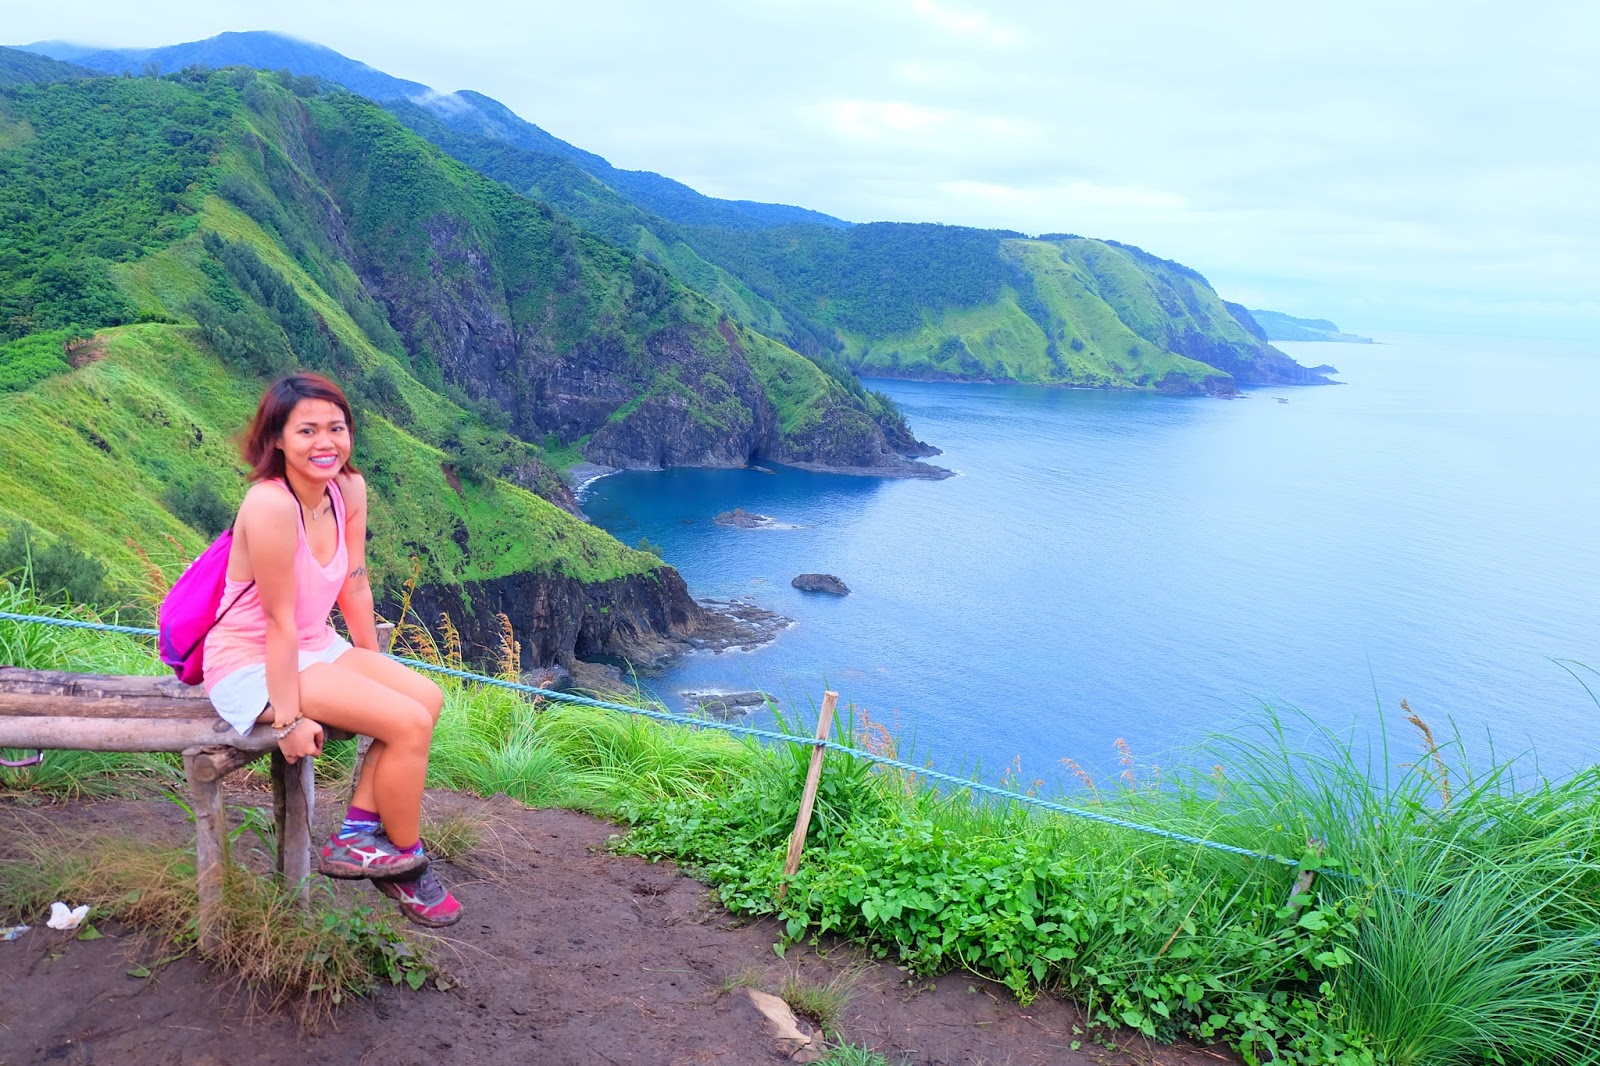 Batanes Of The East Dingalan Aurora From The Highest Peak To The